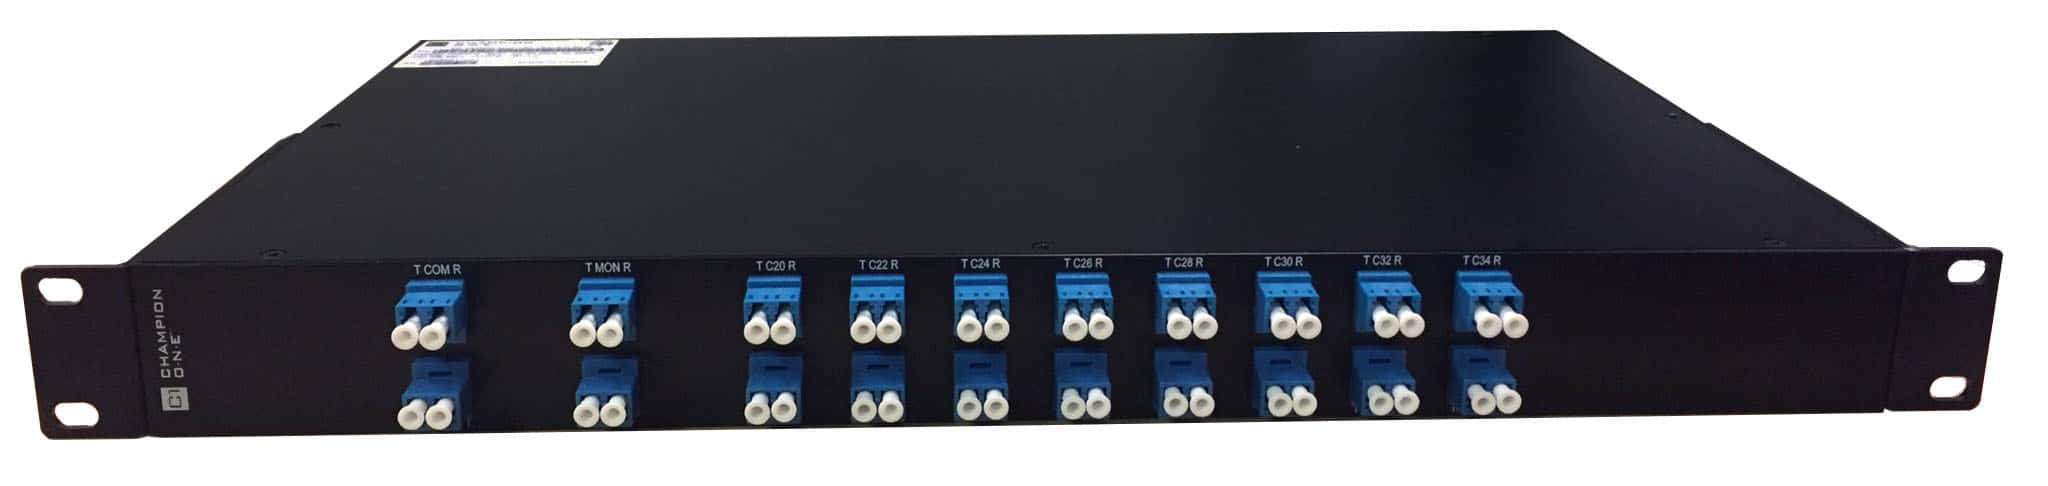 16 Channel DWDM Mux/Demux, ch. 20 start, in 1RU Enclosure